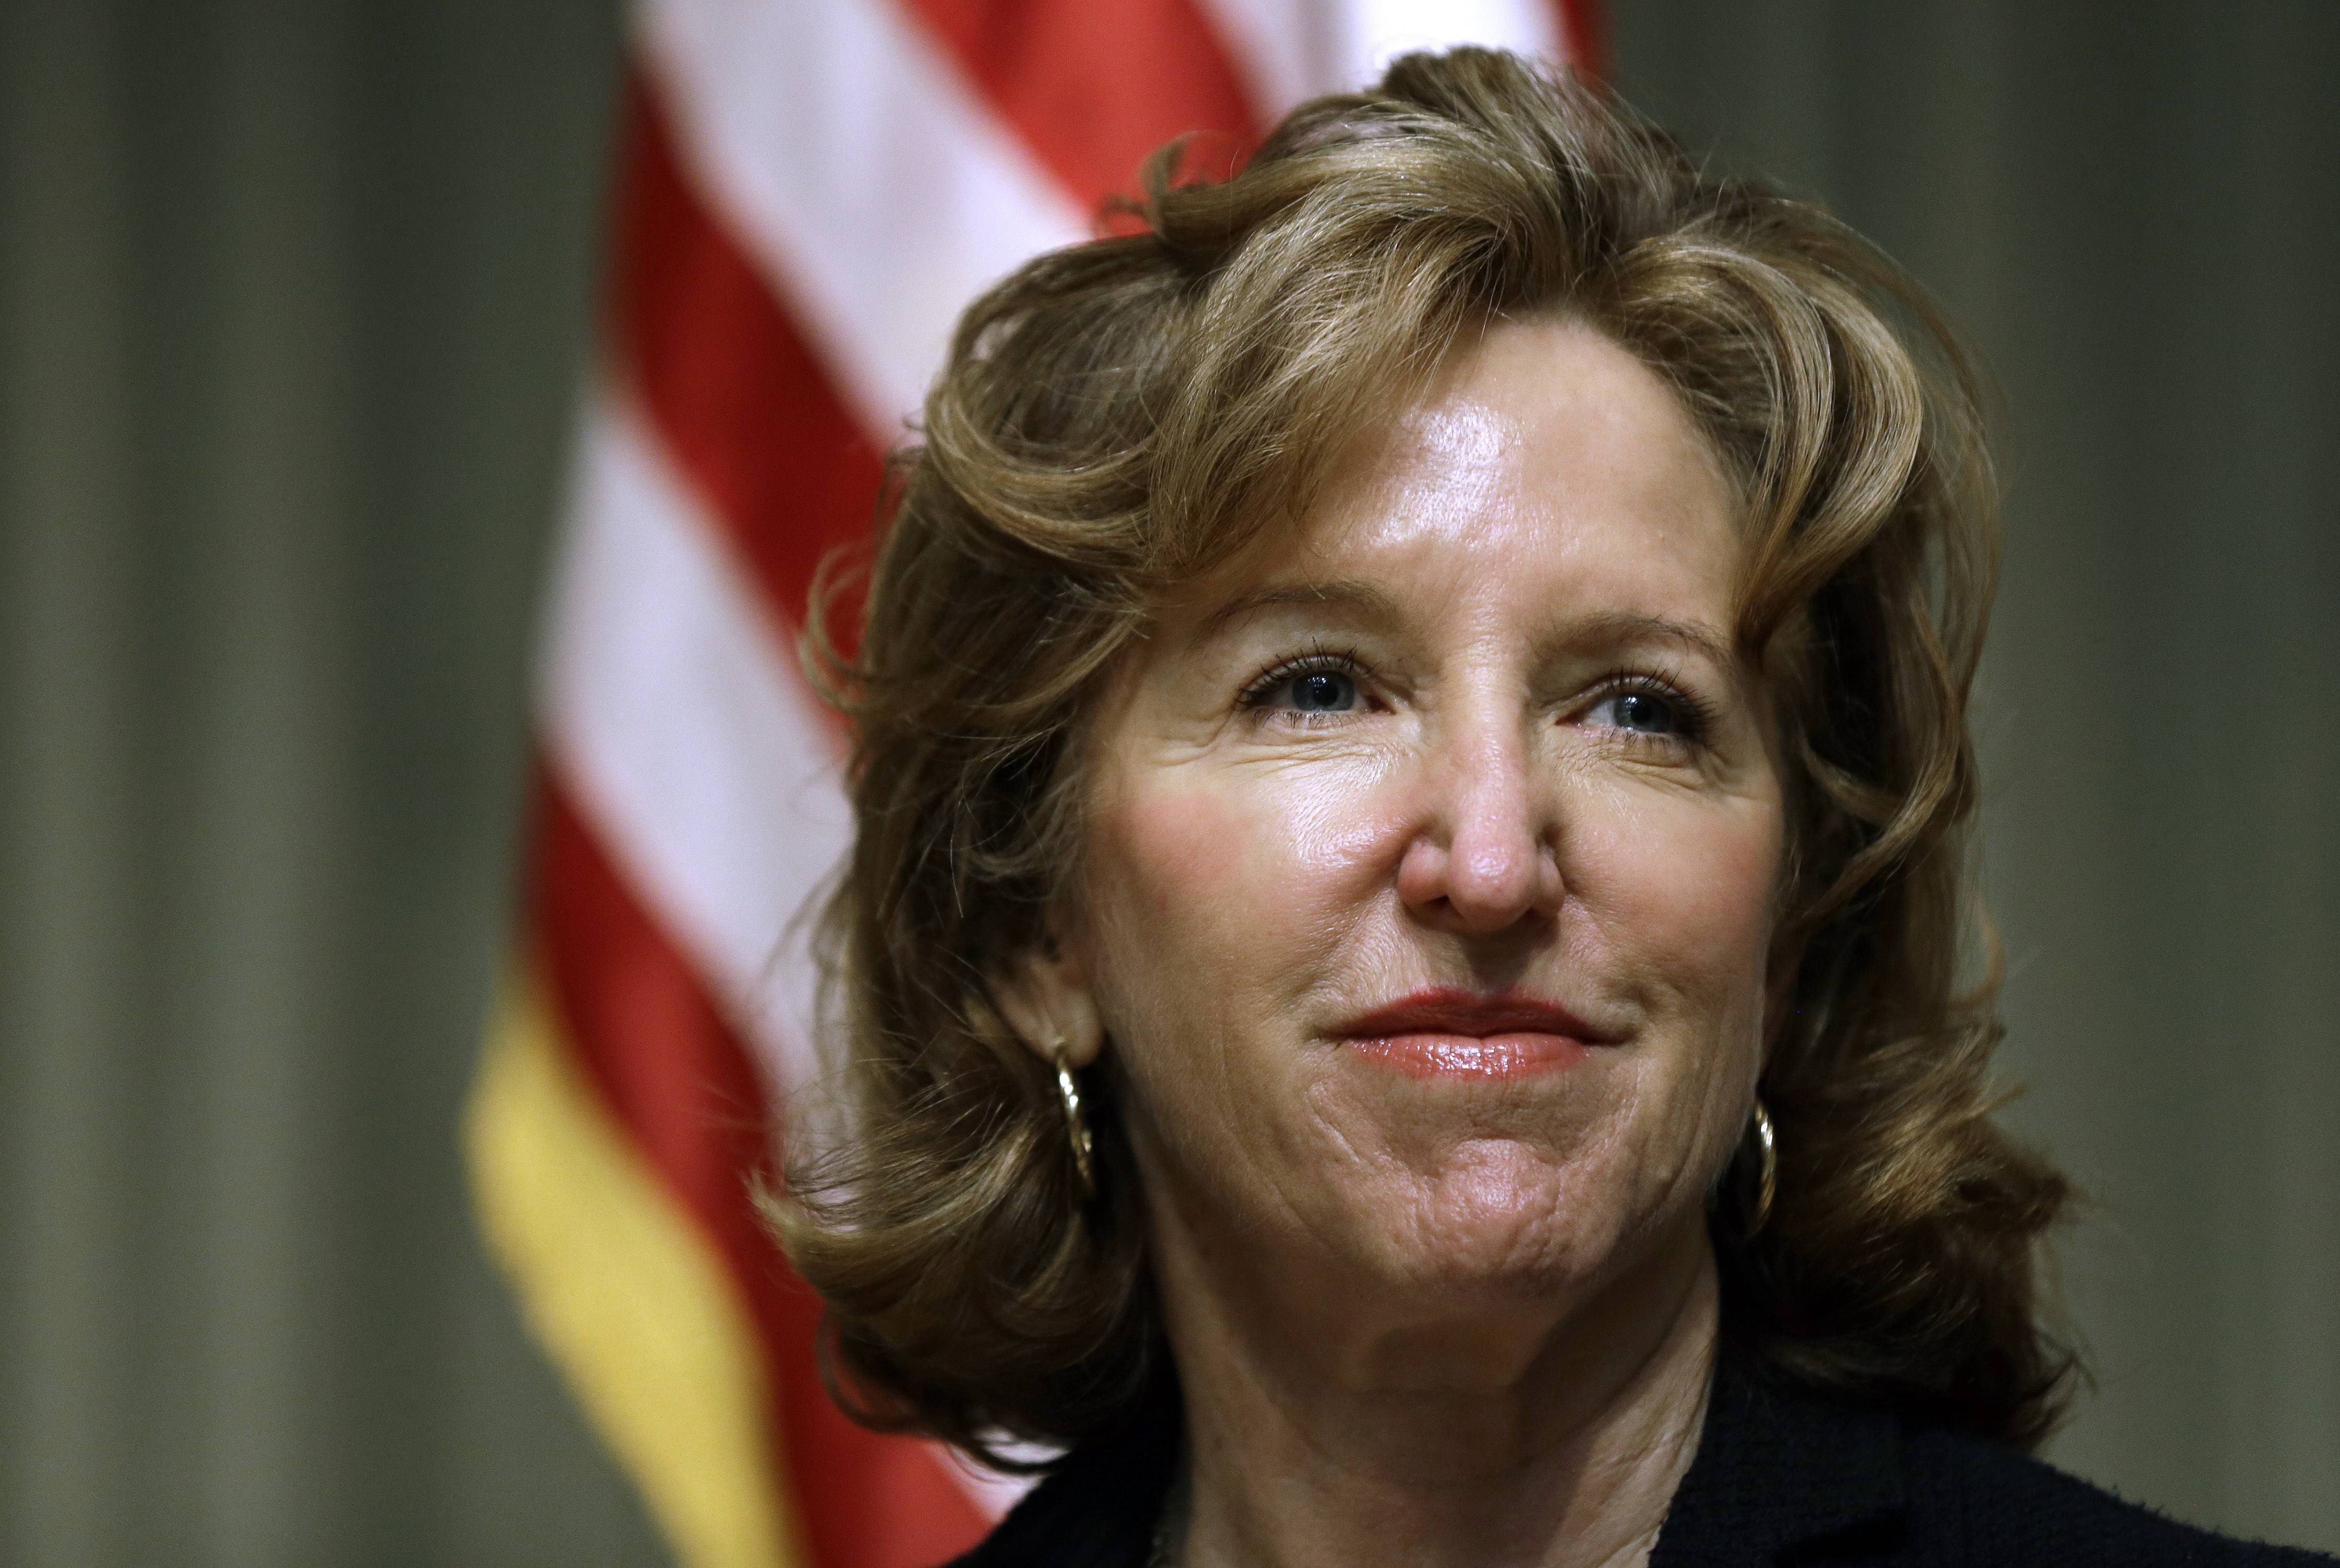 Sen. Kay Hagan, D-N.C., faces heavy outside spending but has Emily's List backing. The Emily's List network of committees raised more than most other outside groups, including the GOP-backed American Crossroads and the anti-tax Club for Growth.